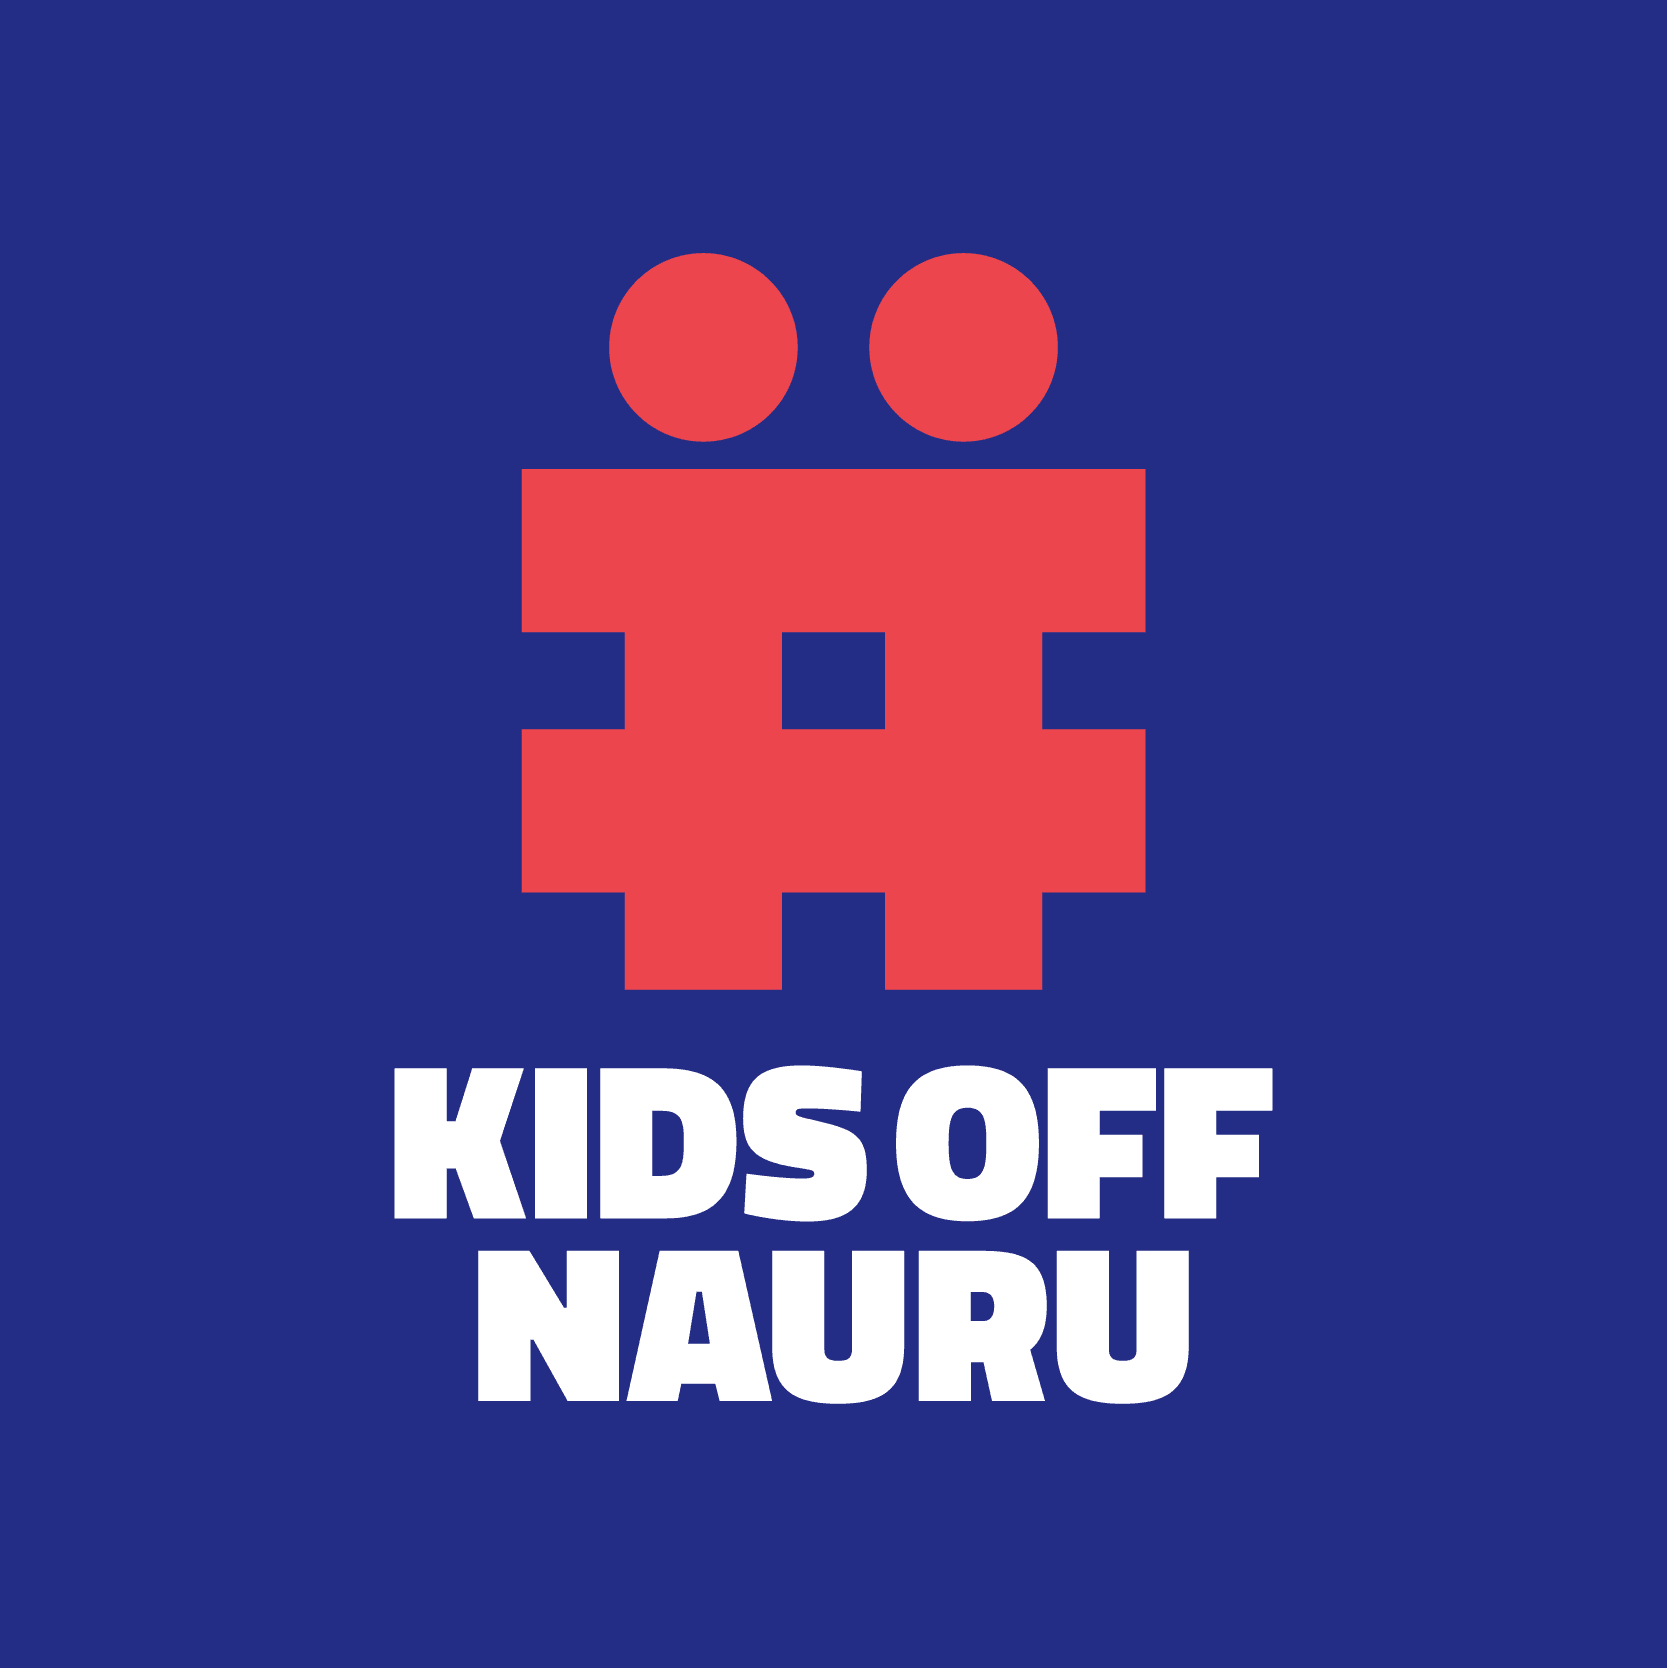 Graphic from the #KidsOffNauru campaign launched by World Vision